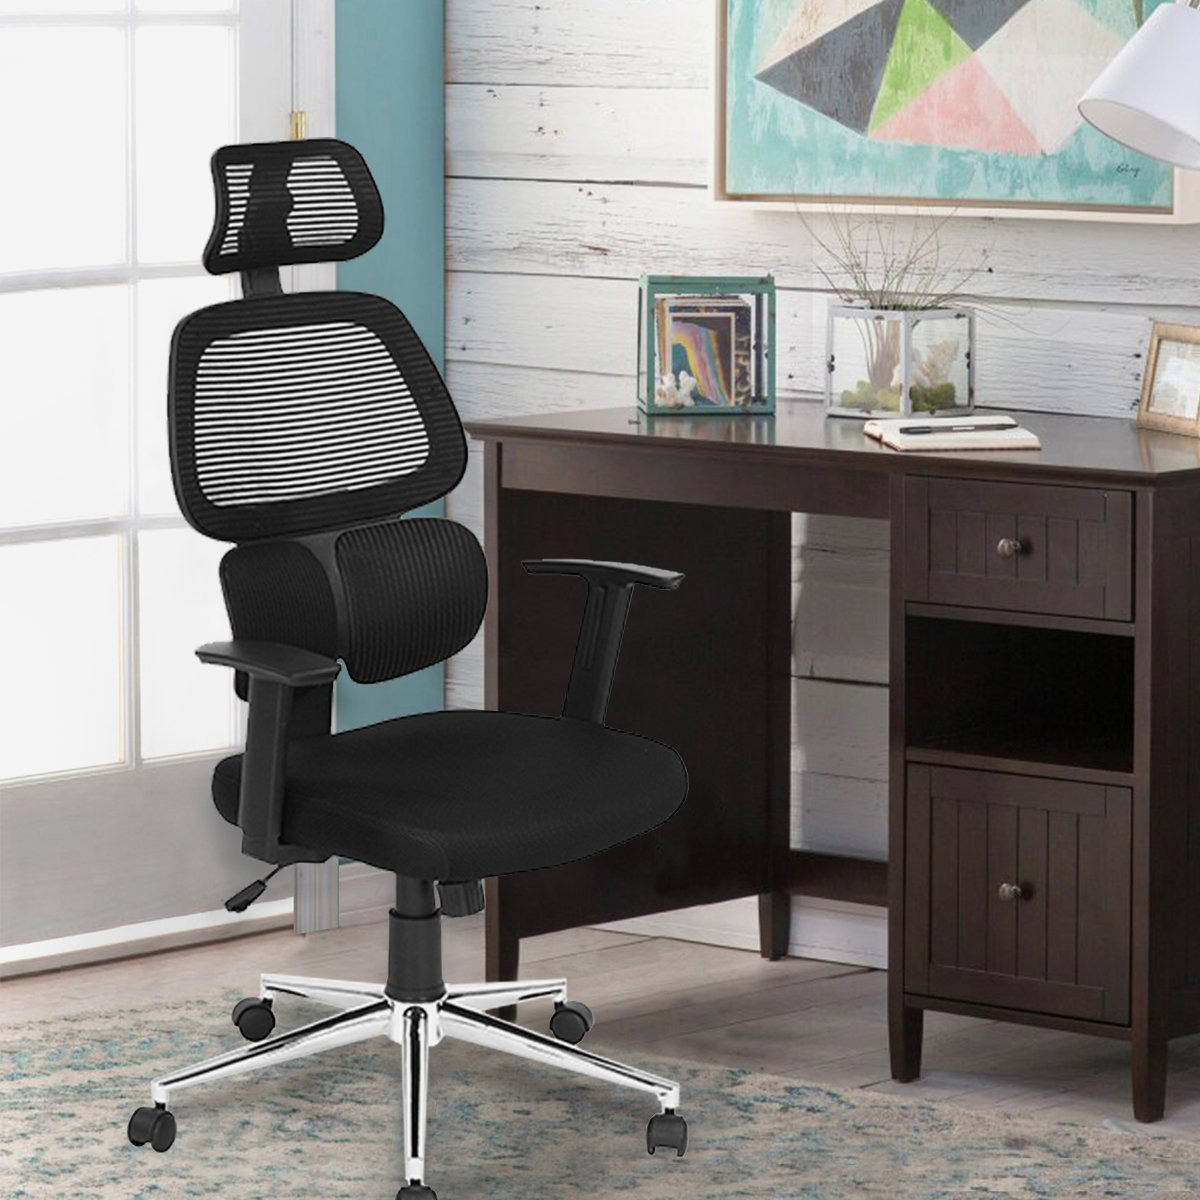 Best office chair with adjustable lumbar support